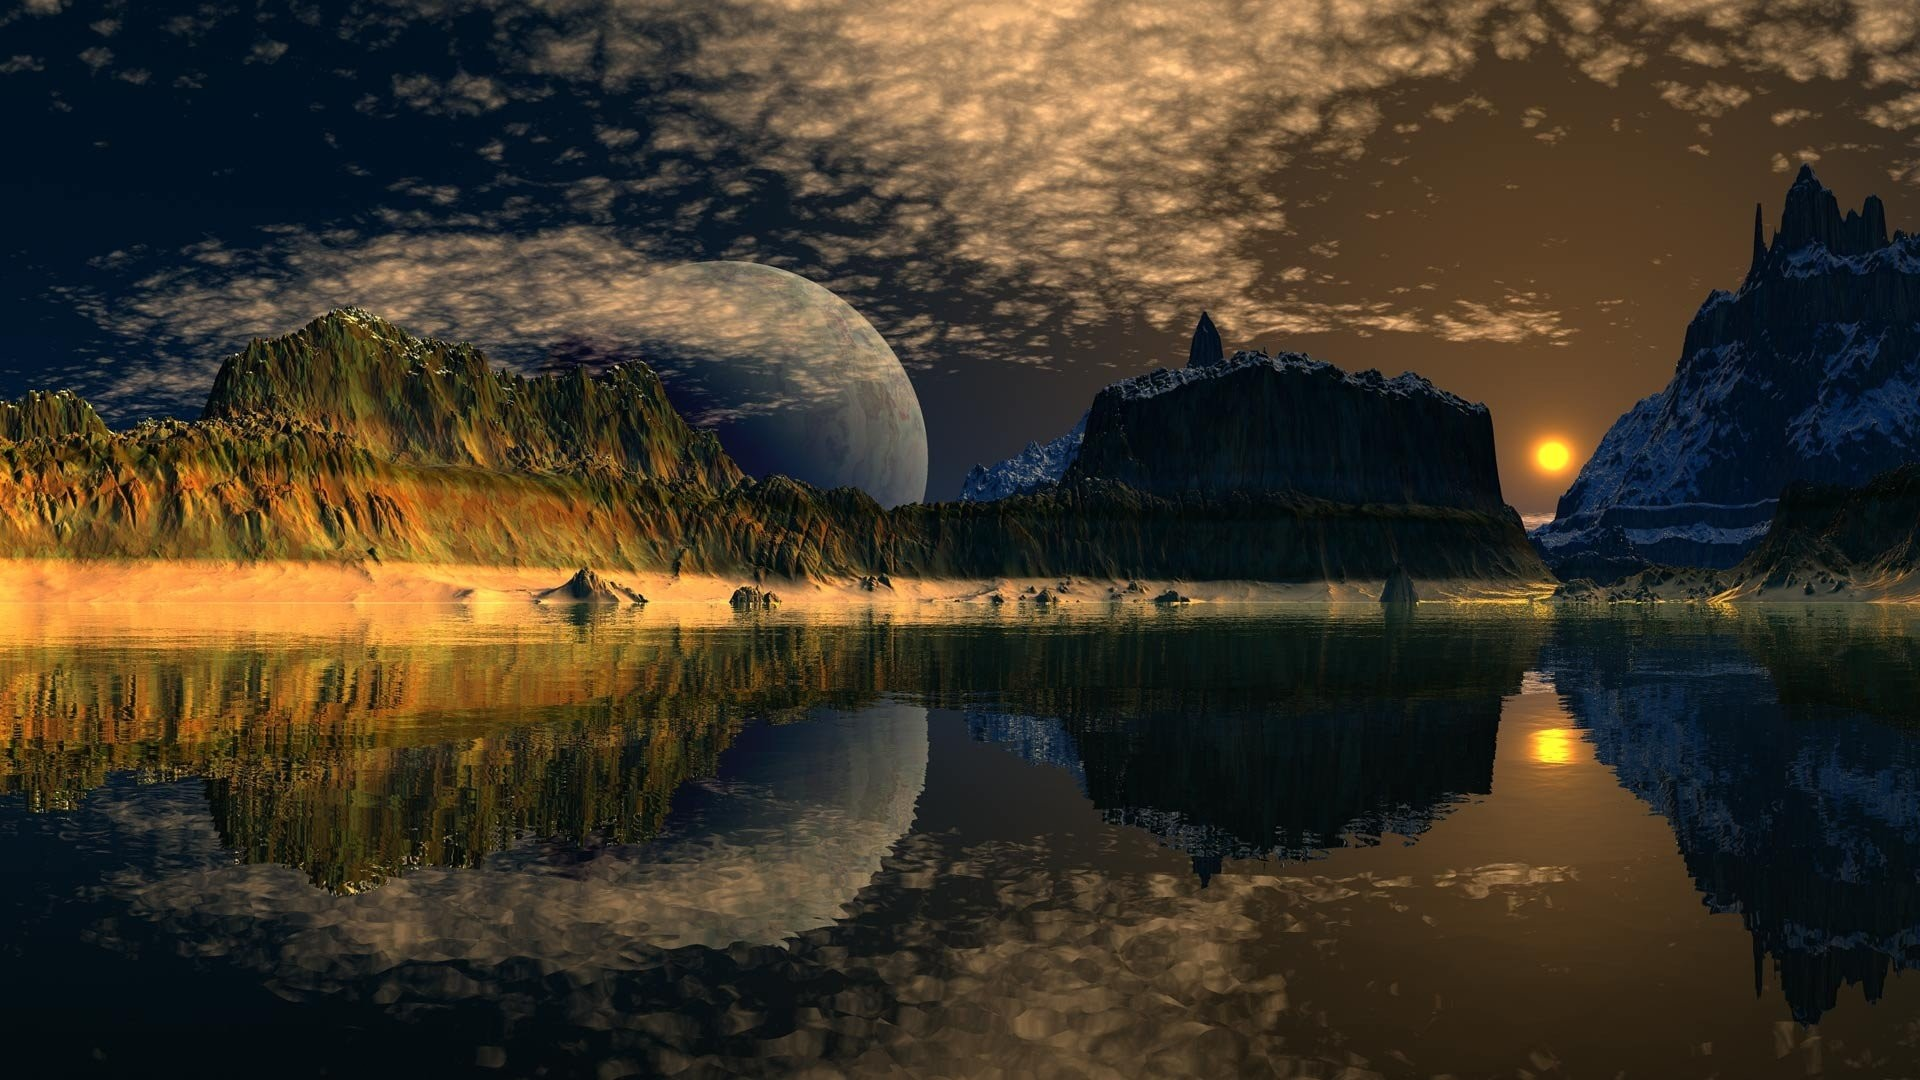 1920x1080 computer-background-cool-desktop-landscape-lake-desktops-moon-